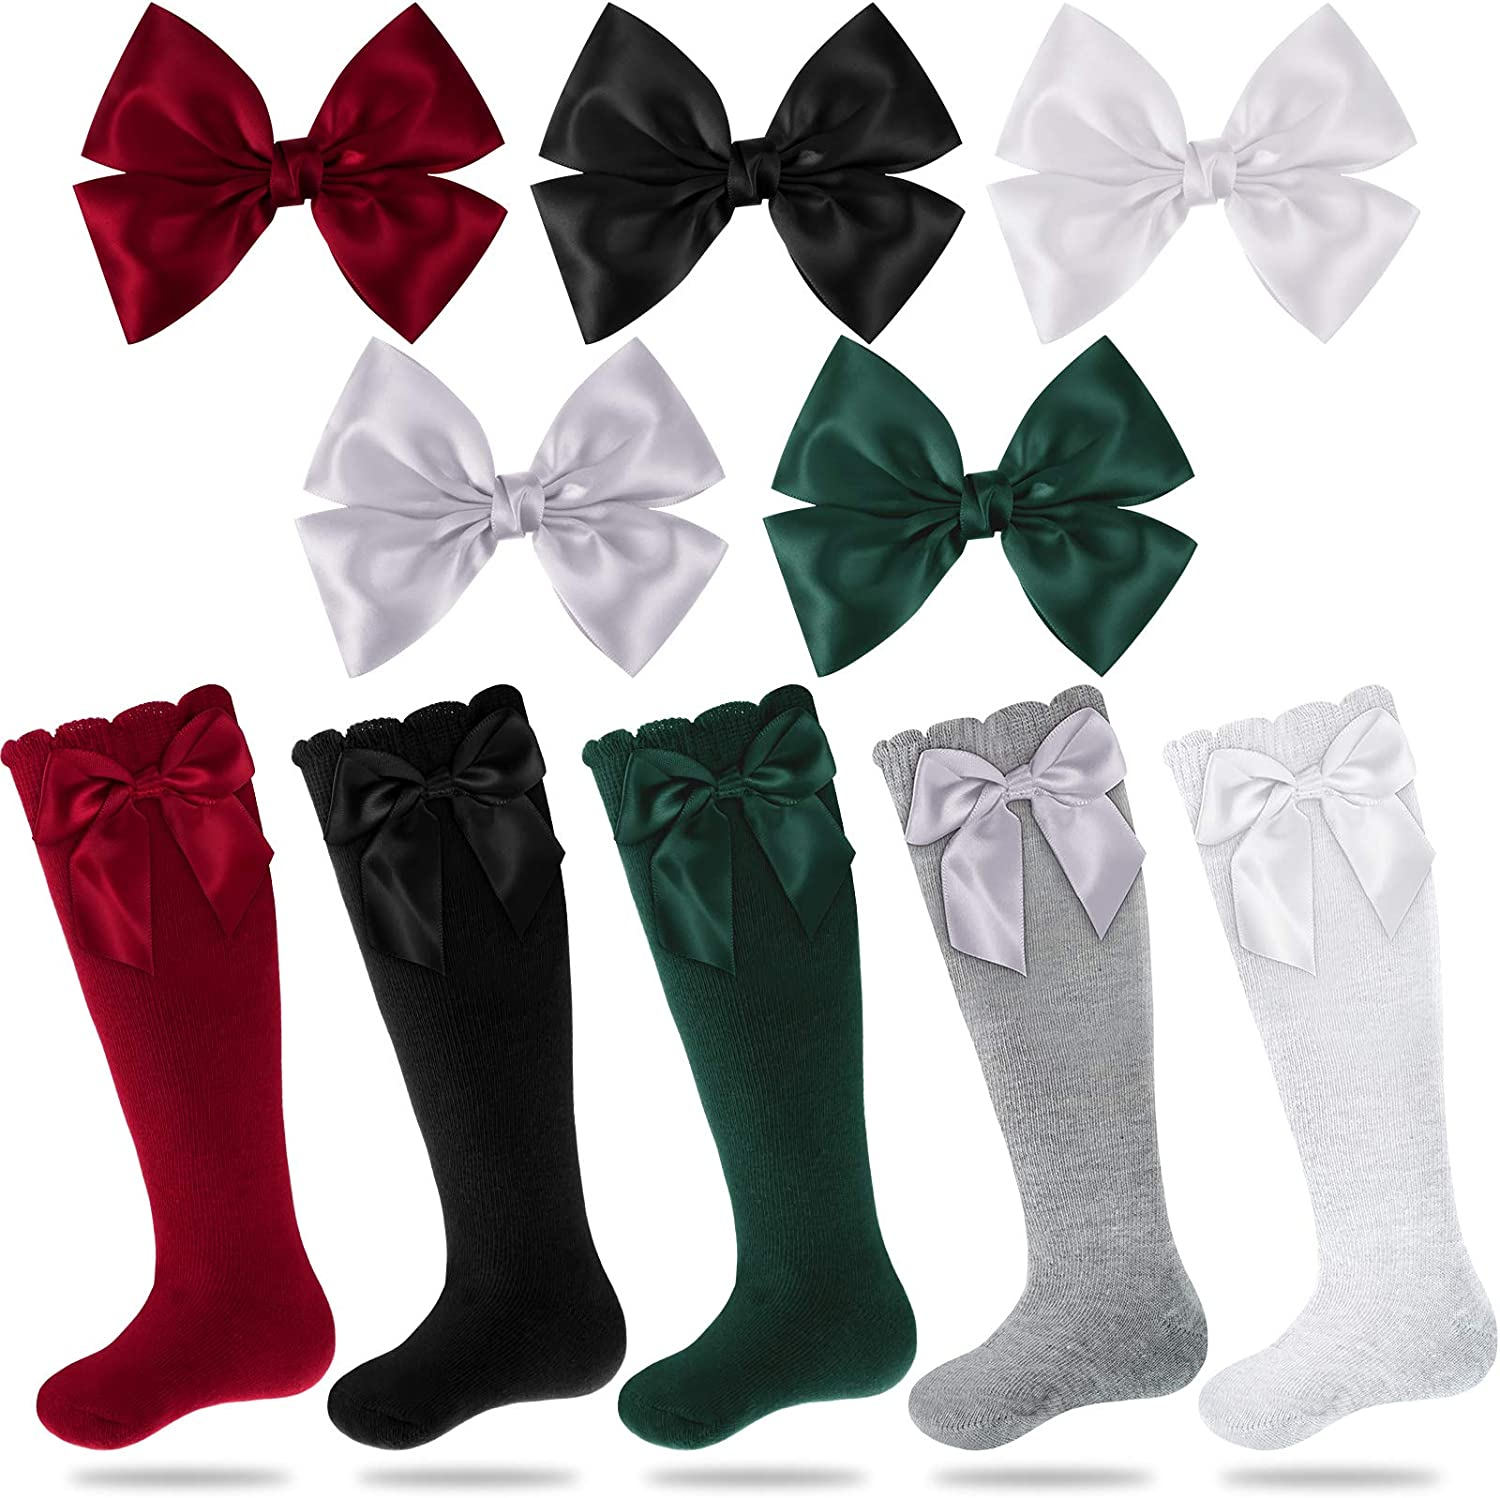 5 Pairs Baby Girl Colorful Bowknot Knit Cotton High Socks with 5 Pieces Satin Ribbon Bowknot Hairpin for Girls Accessories